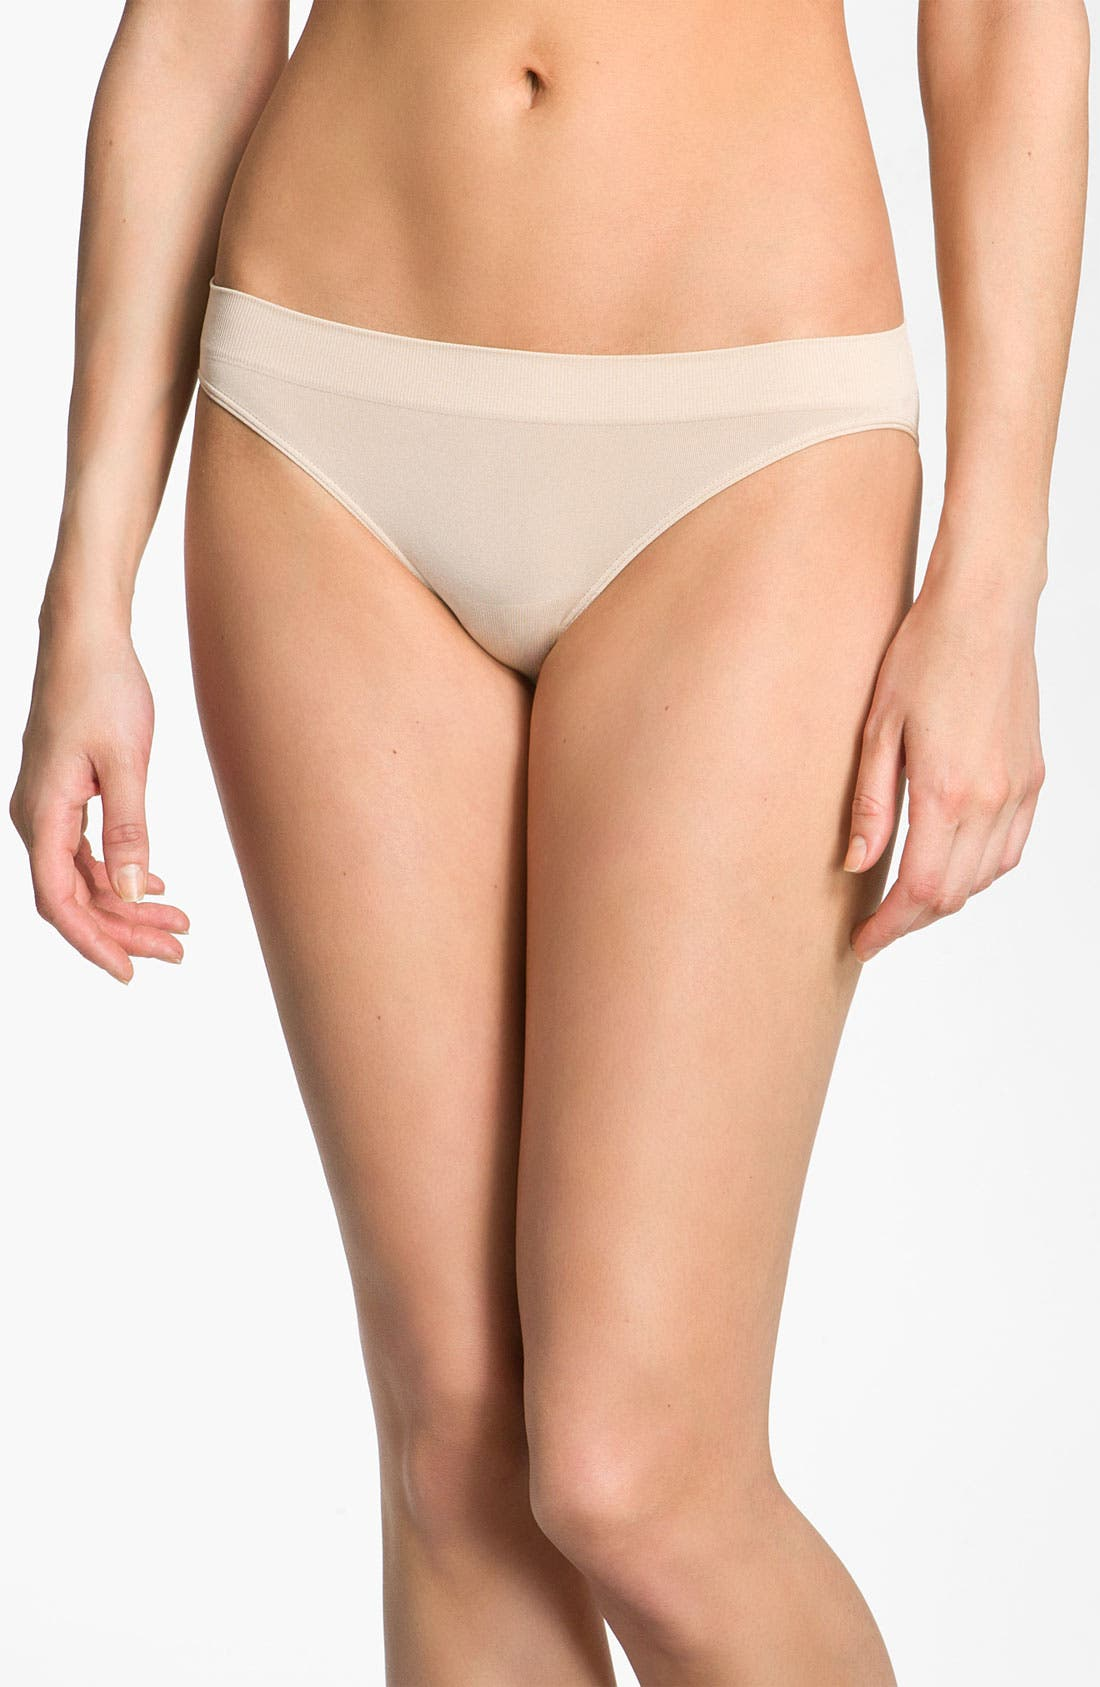 Alternate Image 1 Selected - Wacoal 'B Smooth' Bikini (3 for $39)